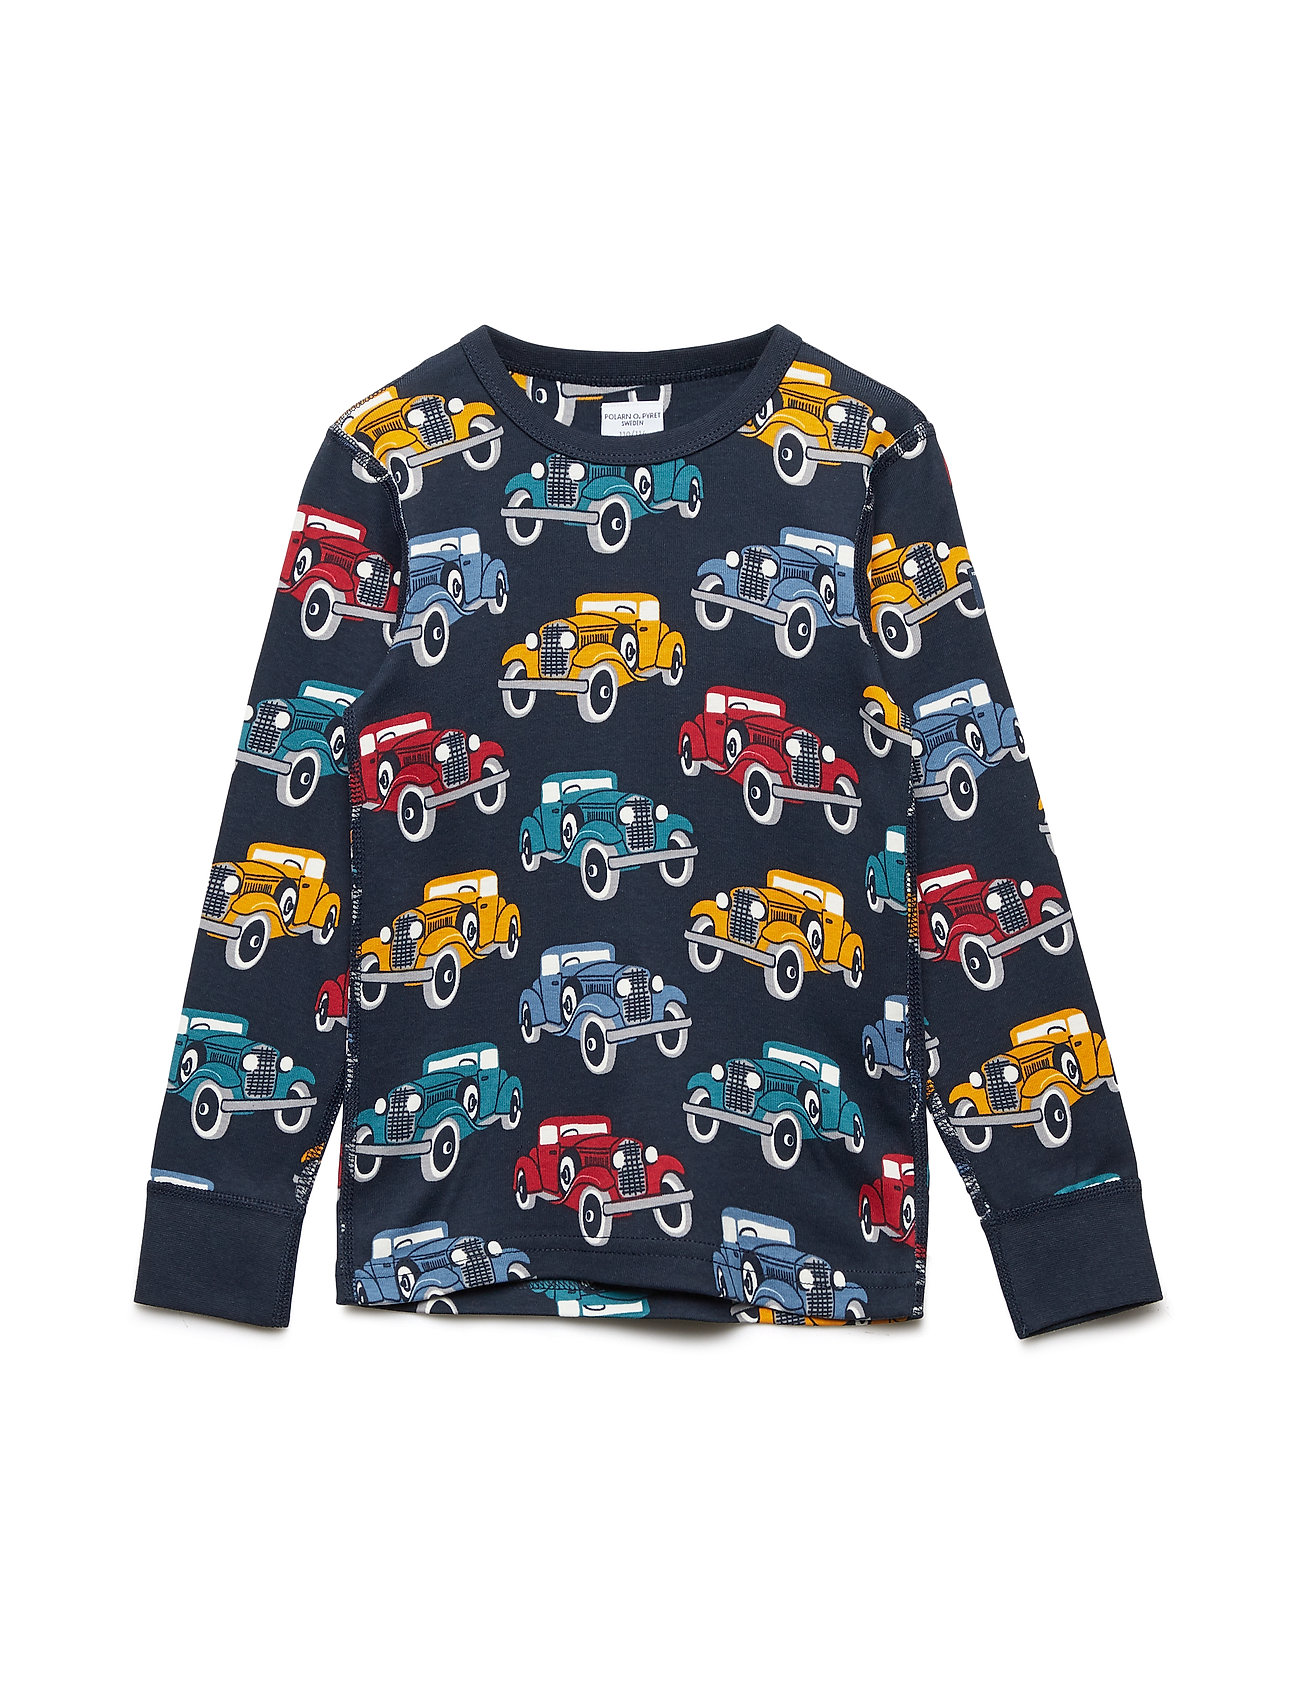 Polarn O. Pyret Top Long Sleeve Pre-school